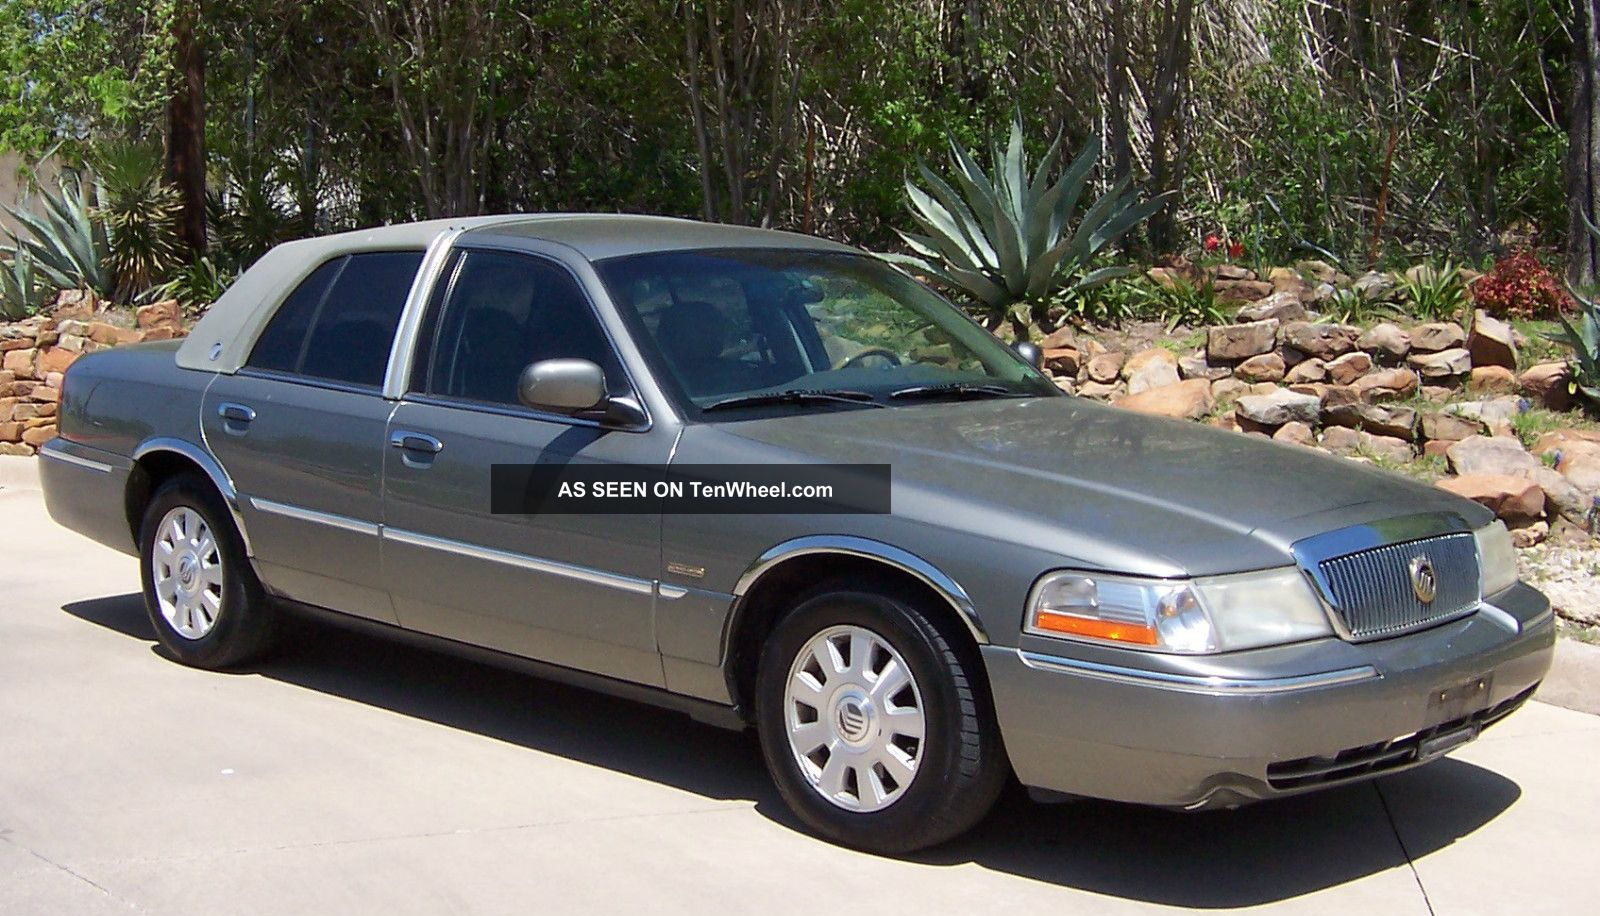 2003 Mercury Grand Marquis Ls Runs And Drives Perfect Great Engine Diagram Luxury Car